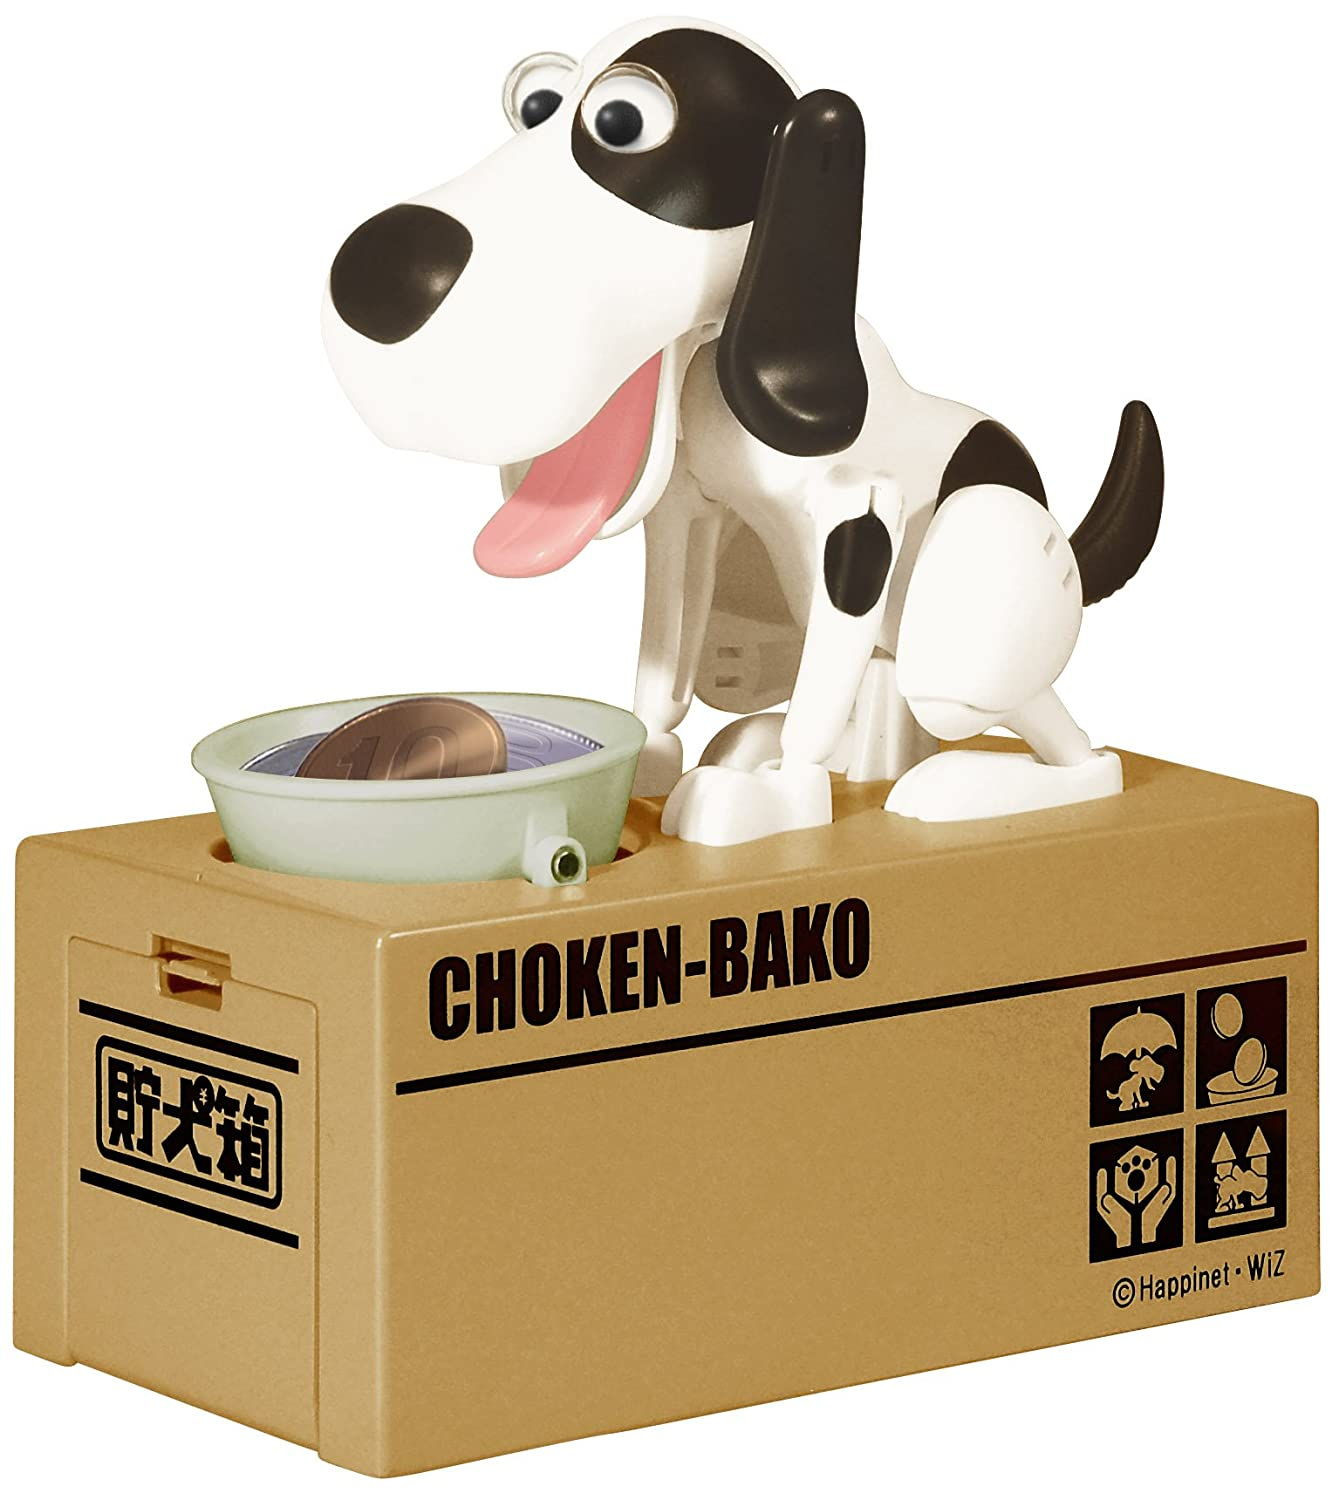 TERUTERU - Toy Figure - Choken Bako Dog Piggy Bank (White and Black Version) by Happinet